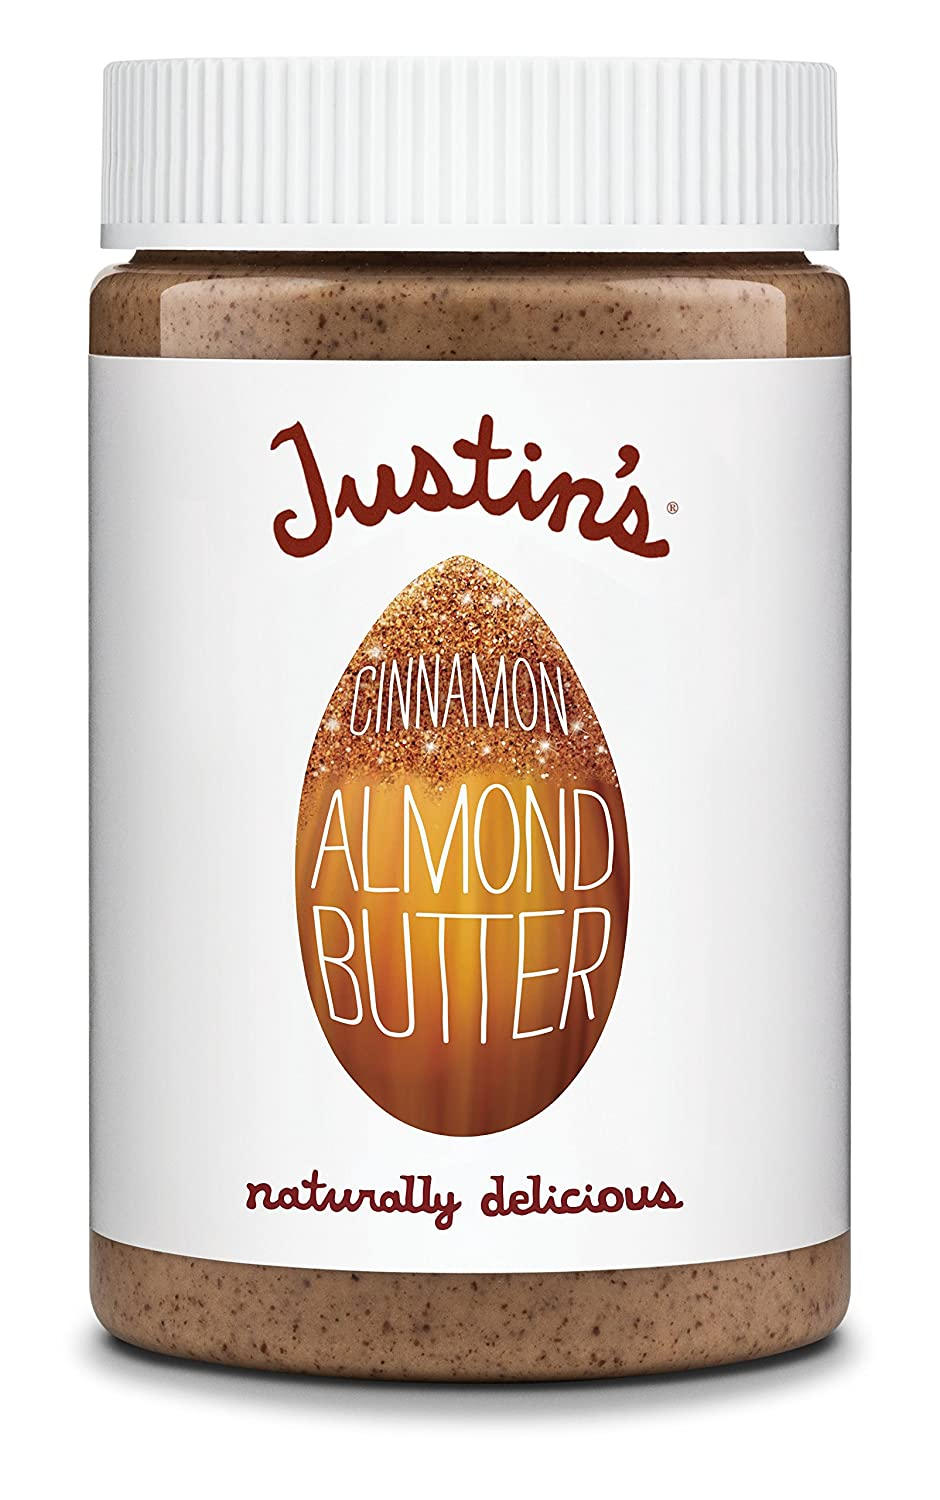 Amazon.com : Cinnamon Almond Butter by Justins, No Stir, Gluten-free, Non-GMO, Responsibly Sourced, 6 Jars (16oz each) : Grocery & Gourmet Food